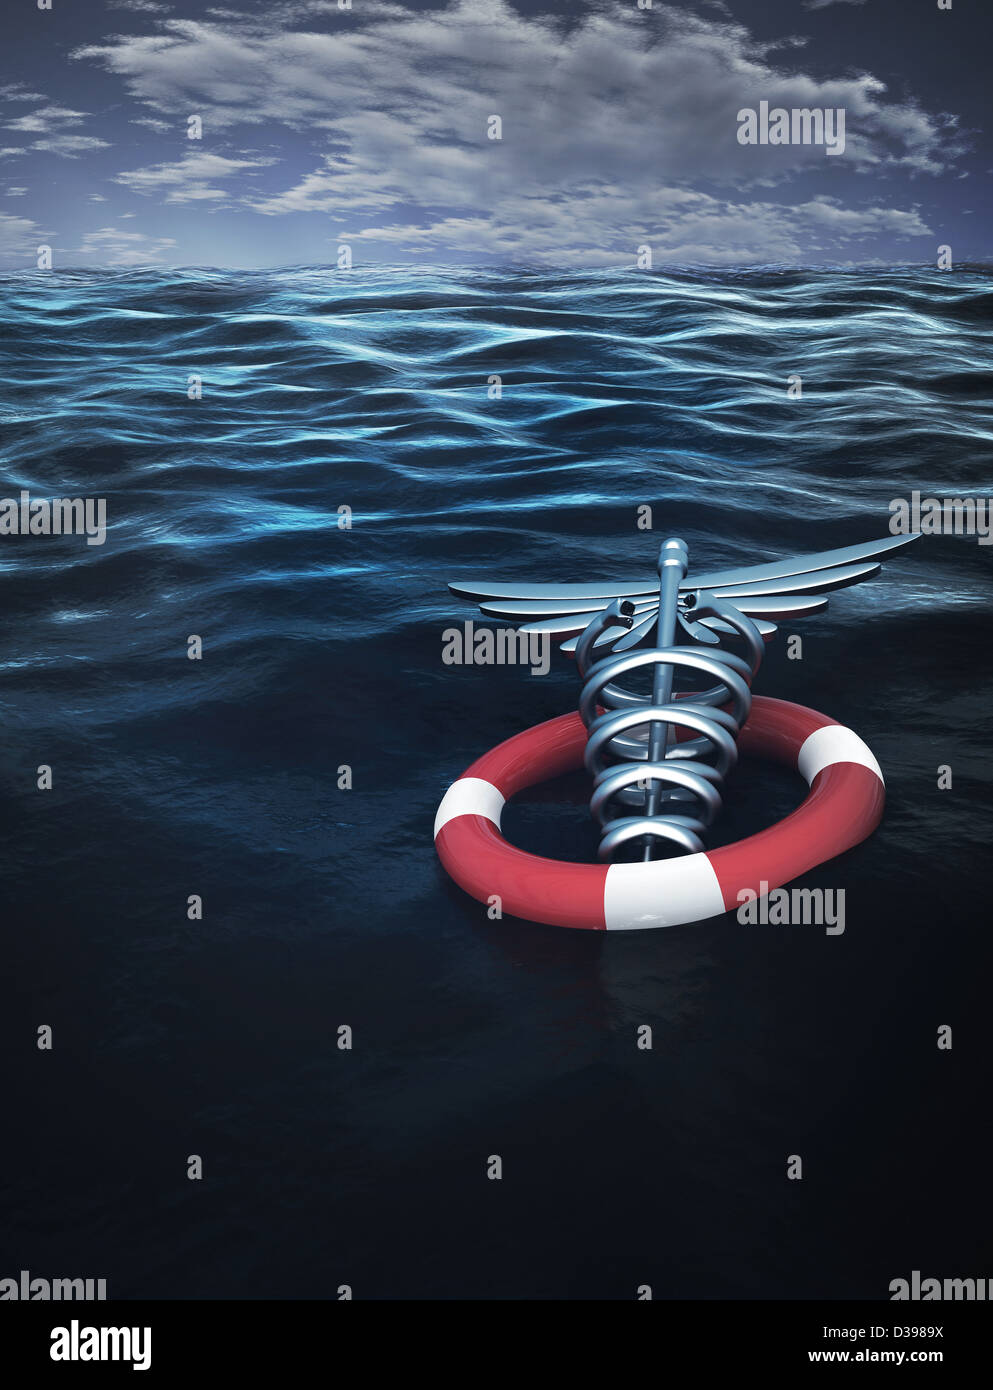 Caduceus symbol with inflatable tube floating on water representing medical insurance - Stock Image